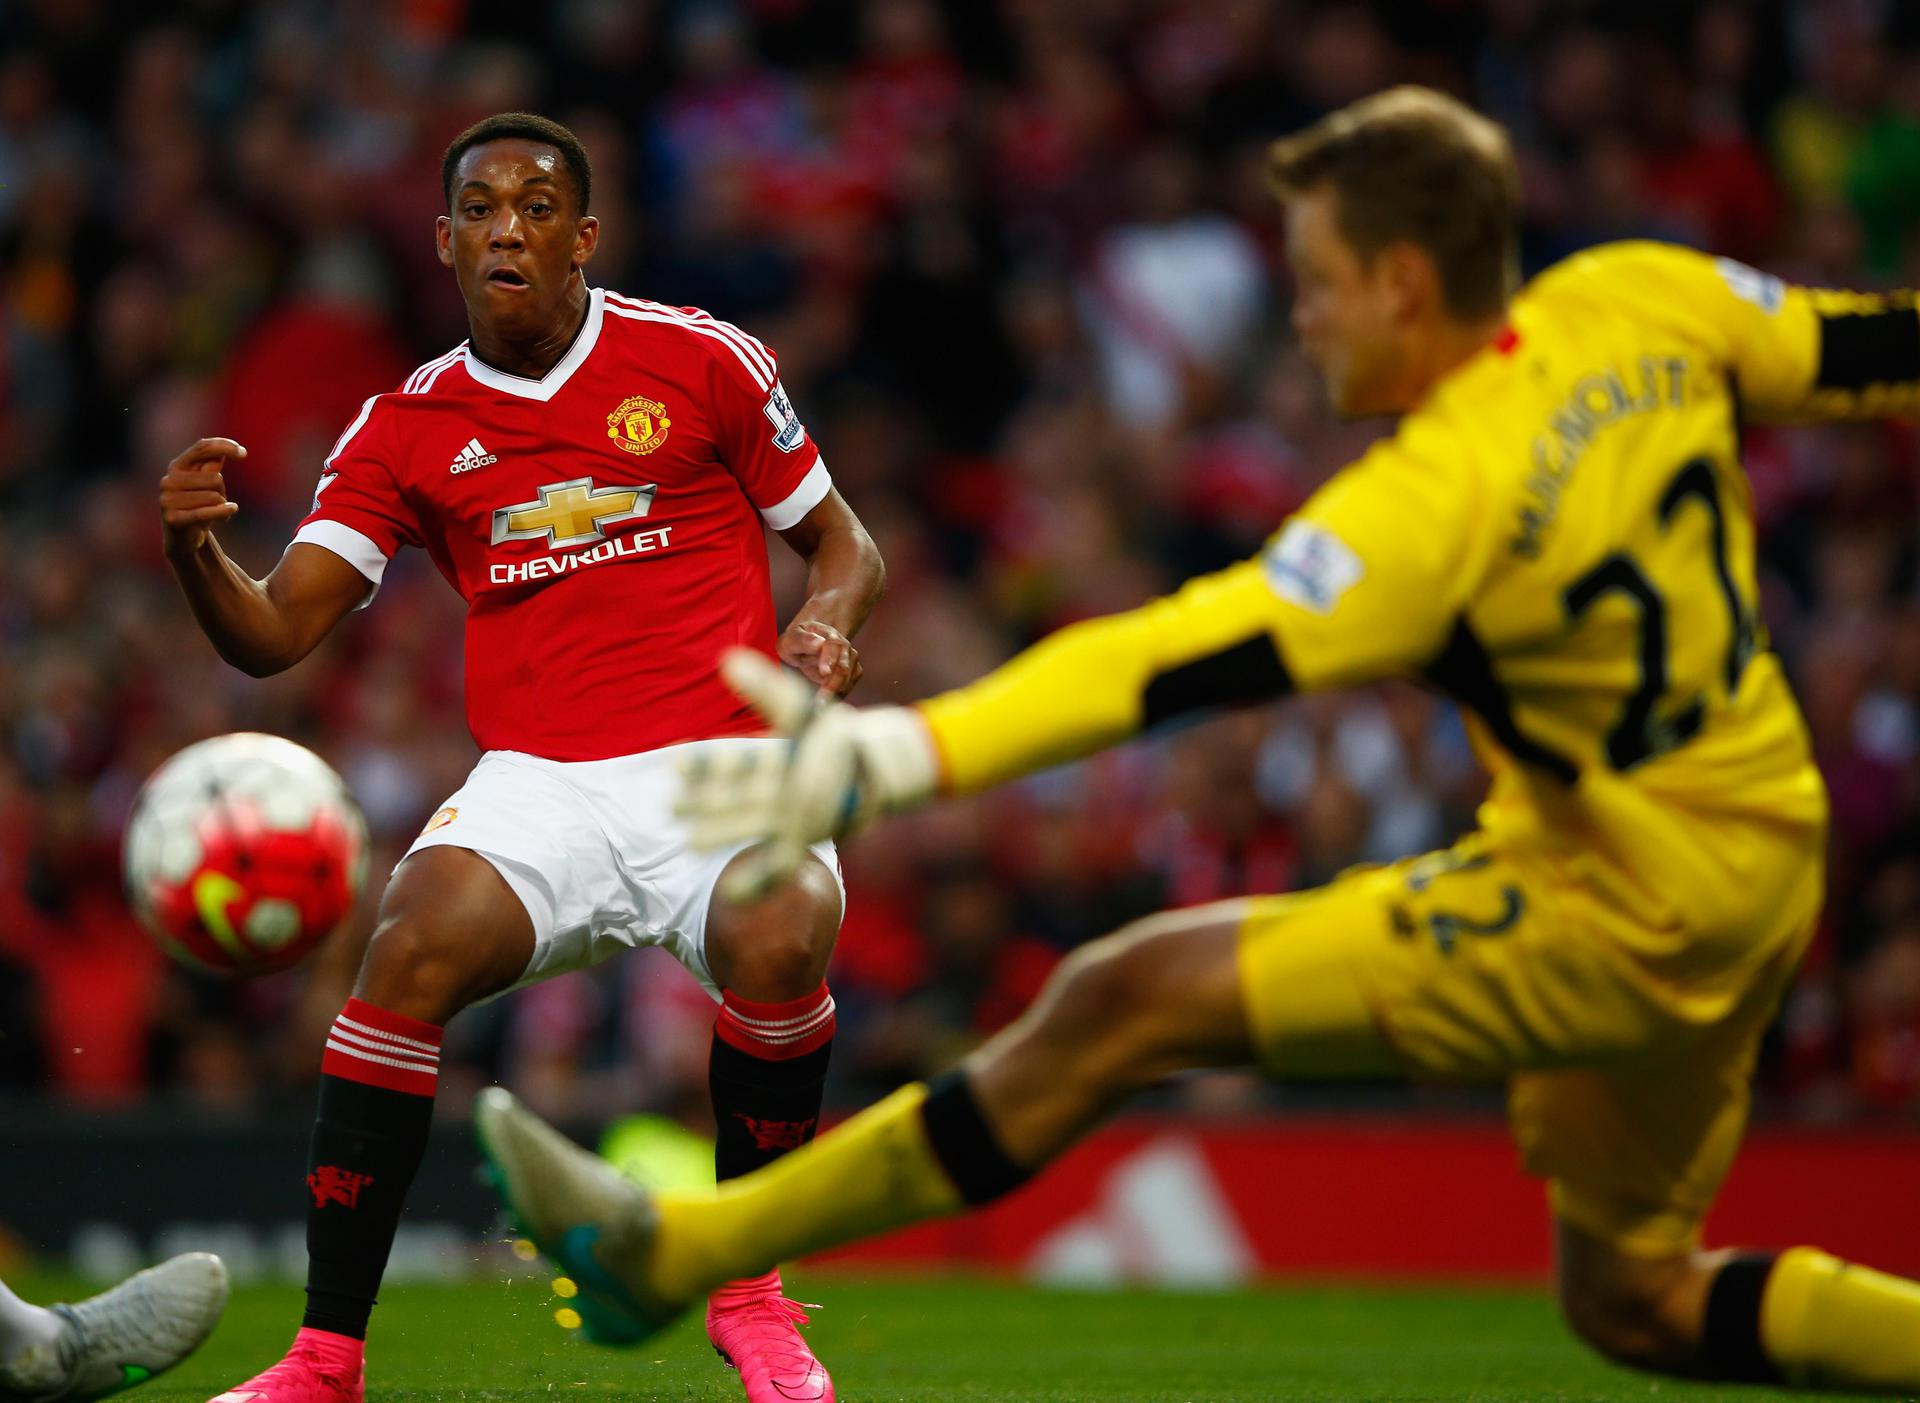 Anthony Martial making his Manchester United debut against Liverpool in 2015.